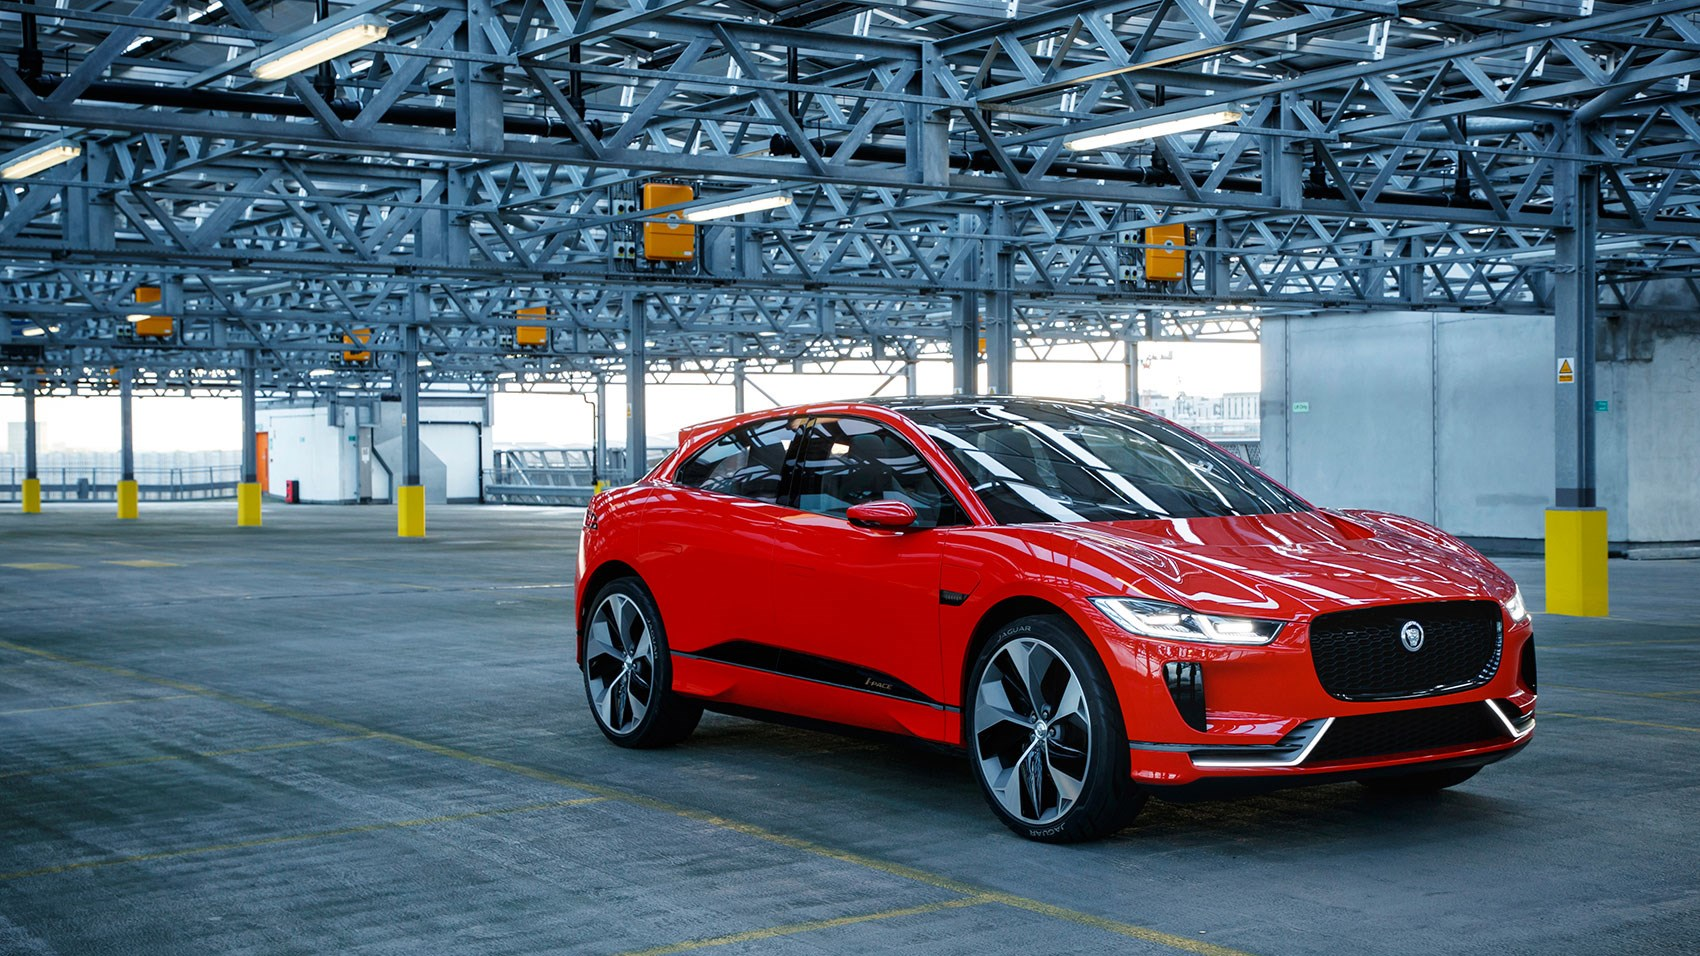 Marvelous Jaguar I Pace Electric SUV ...